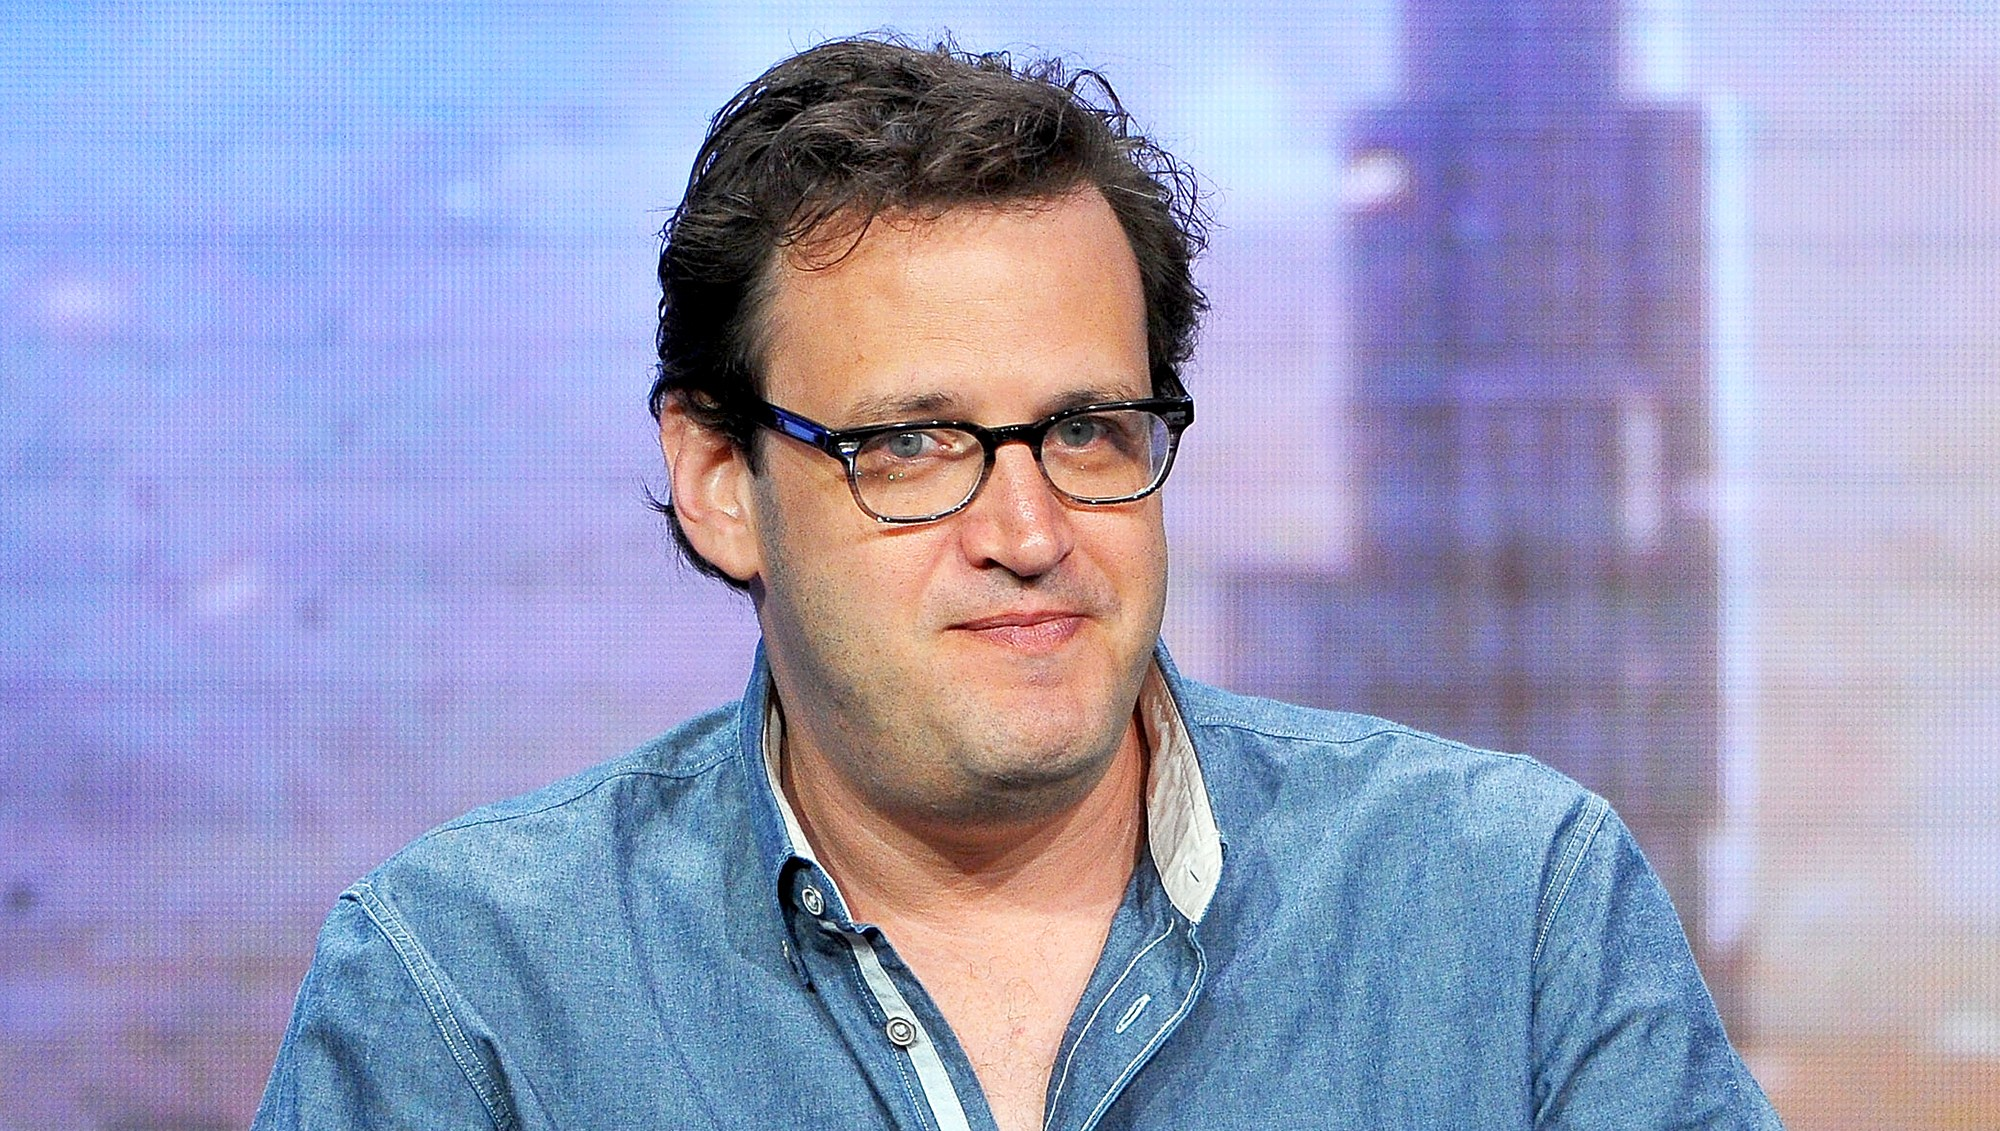 Andrew Kreisberg attends the 2016 Television Critics Association Summer Tour at The Beverly Hilton Hotel in Beverly Hills, California.